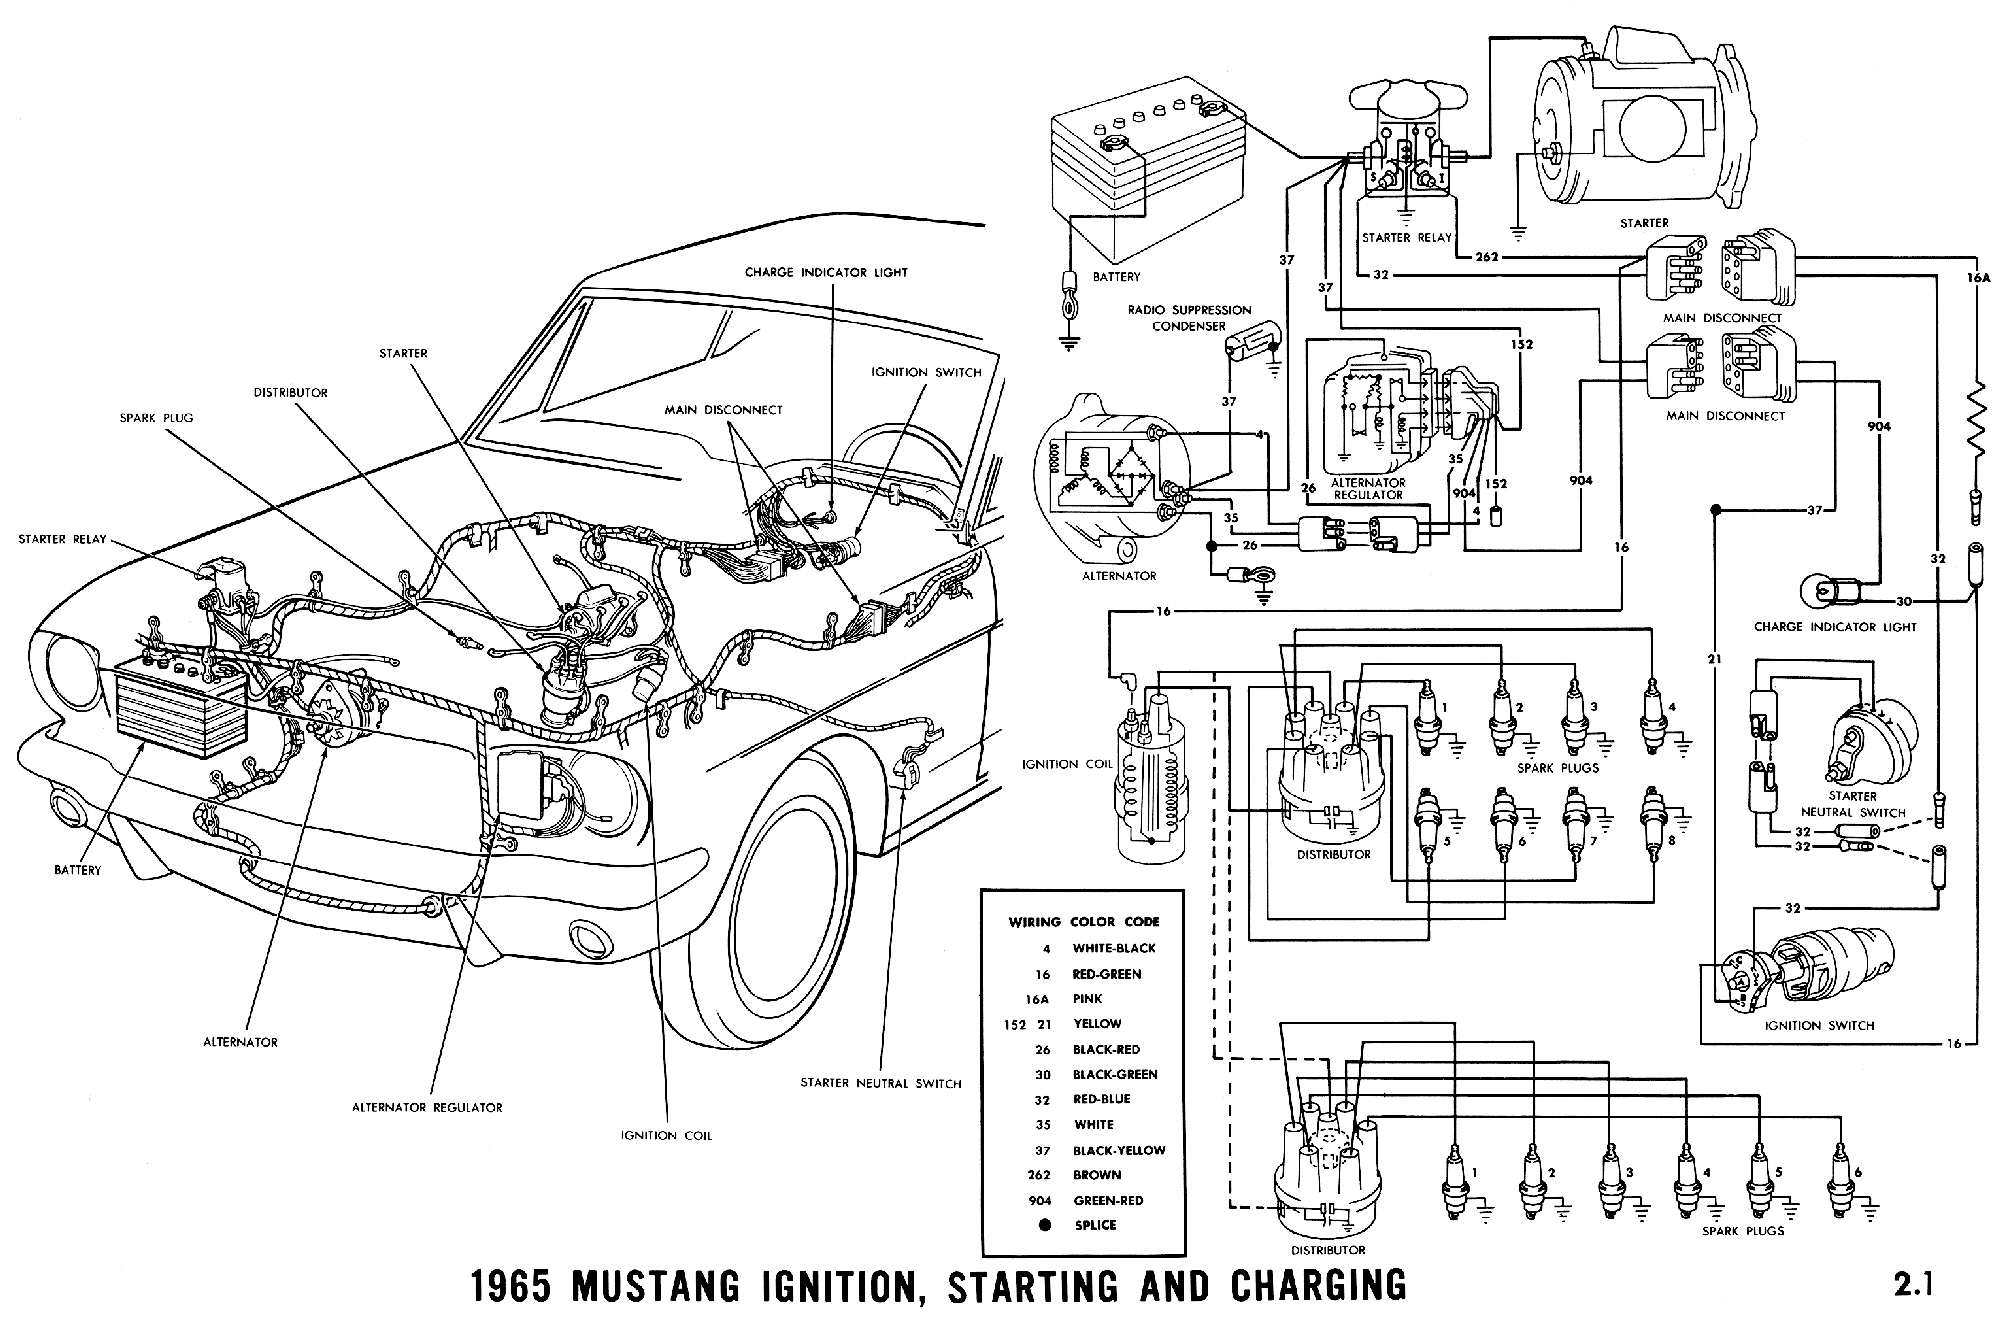 hight resolution of 1965 mustang wiring diagrams average joe restoration 1968 falcon wiring diagram 1968 mustang transmission selector wiring diagram